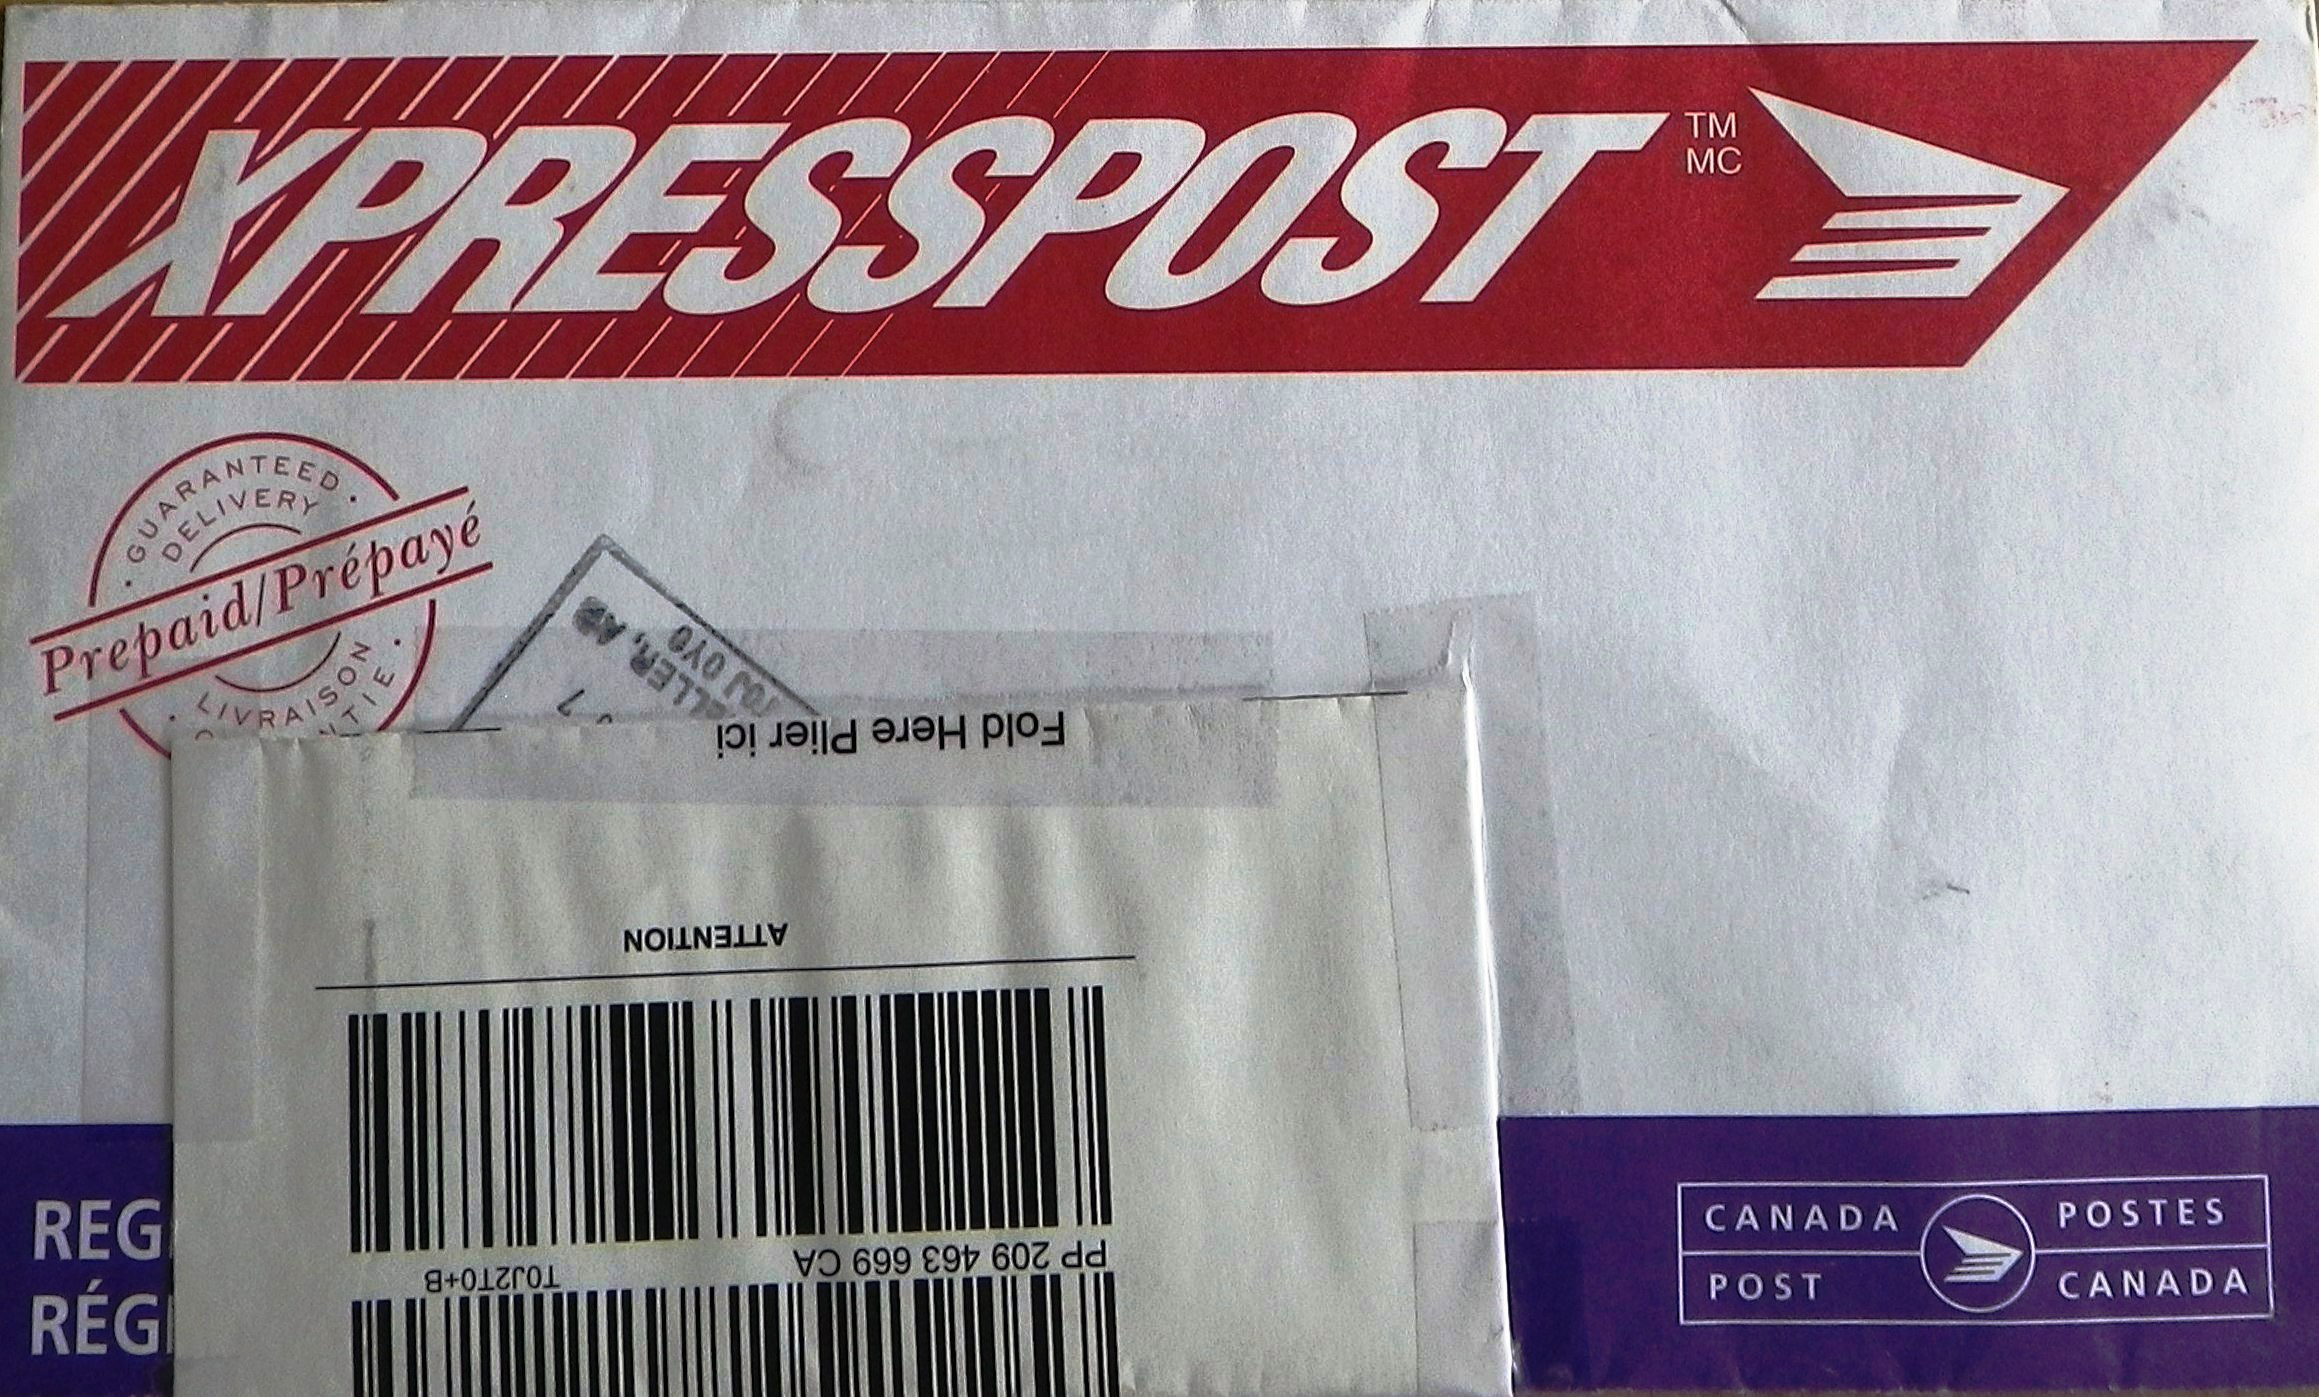 2005 12 front XPRESSPOST stamped refused by addressee contains (EUB) Ernst letter to EUB asking clarication re banishment